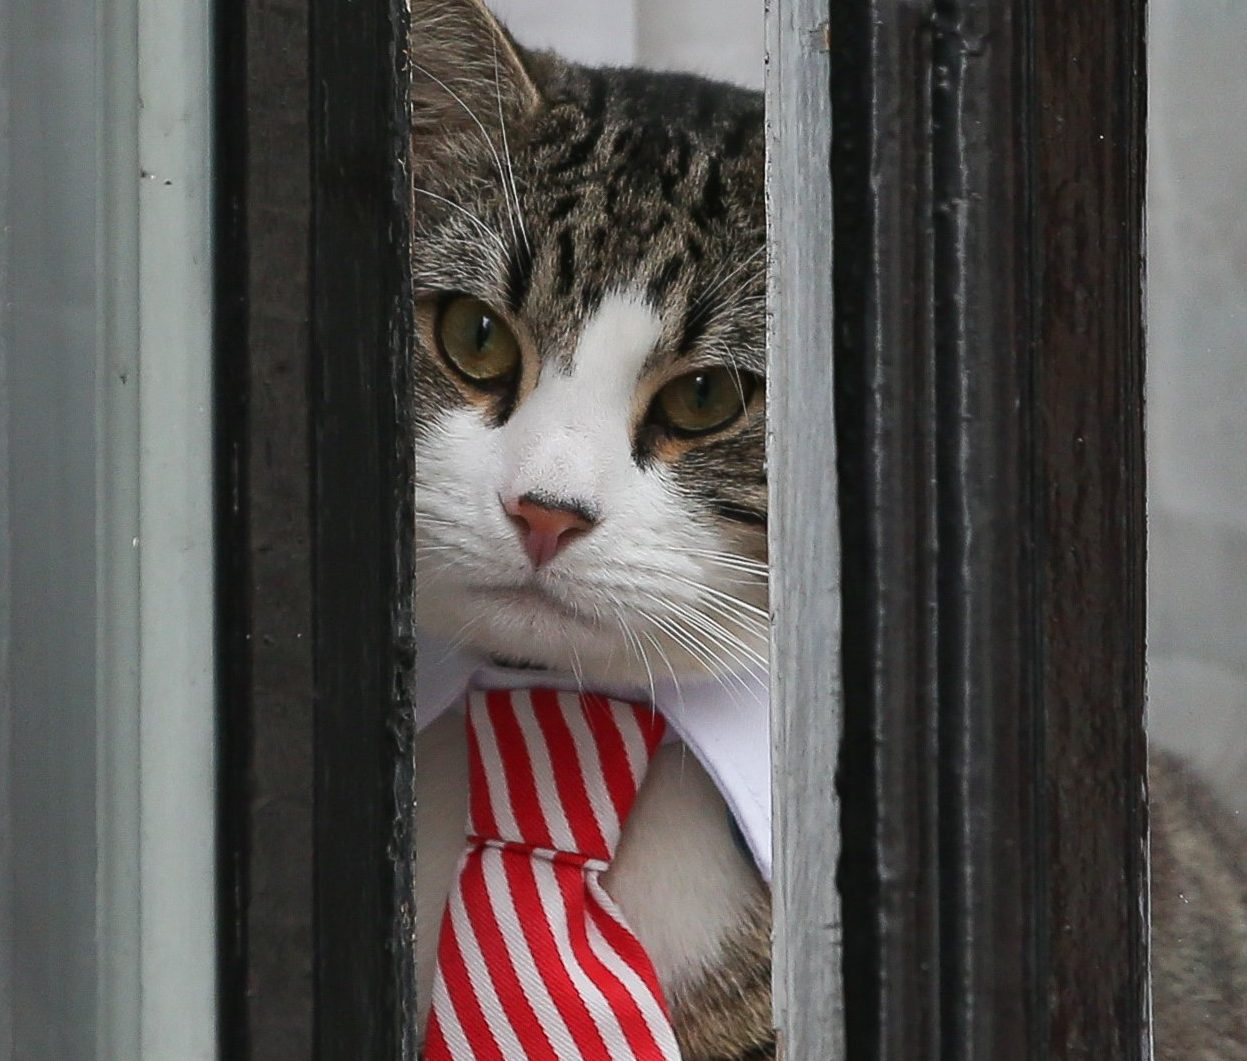 A cat named 'James' wearing a collar and tie looks out of the window of the Ecuadorian Embassy in London on November 14, 2016 where WikiLeaks founder Julian Assange was being questioned over a rape allegation against him. WikiLeaks founder Julian Assange faces questioning by prosecutors on November 14 at the Ecuadoran embassy in London in a twist in the long-running legal battle over a rape allegation against him. An Ecuadoran prosecutor will quiz the founder of the secret-spilling website at the red-brick building where he has been holed up for more than four years, with Swedish prosecutor Ingrid Isgren and a Swedish police inspector also attending, officials said. / AFP / DANIEL LEAL-OLIVAS (Photo credit should read DANIEL LEAL-OLIVAS/AFP/Getty Images)